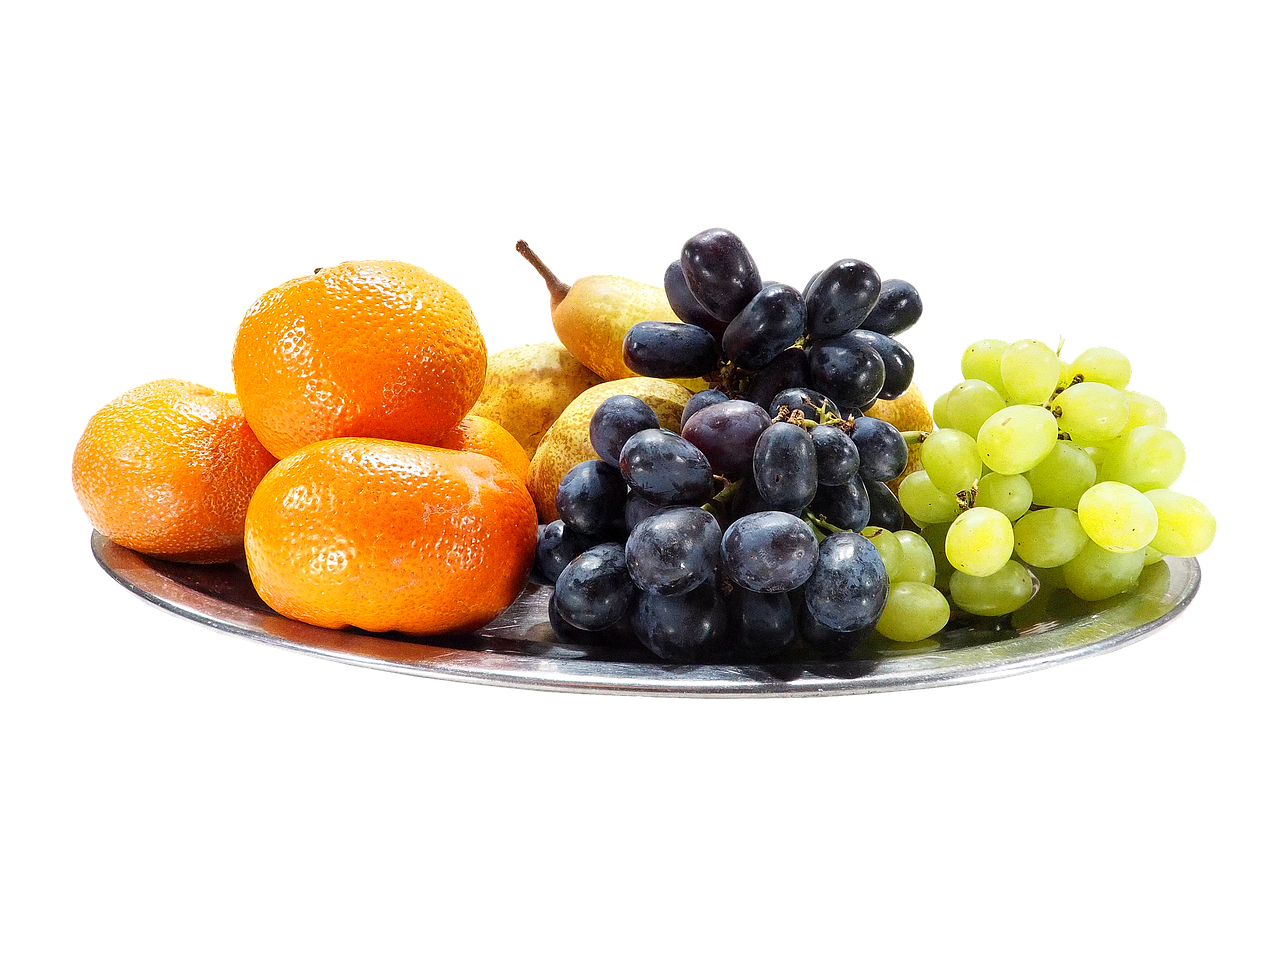 PNG images Fruit